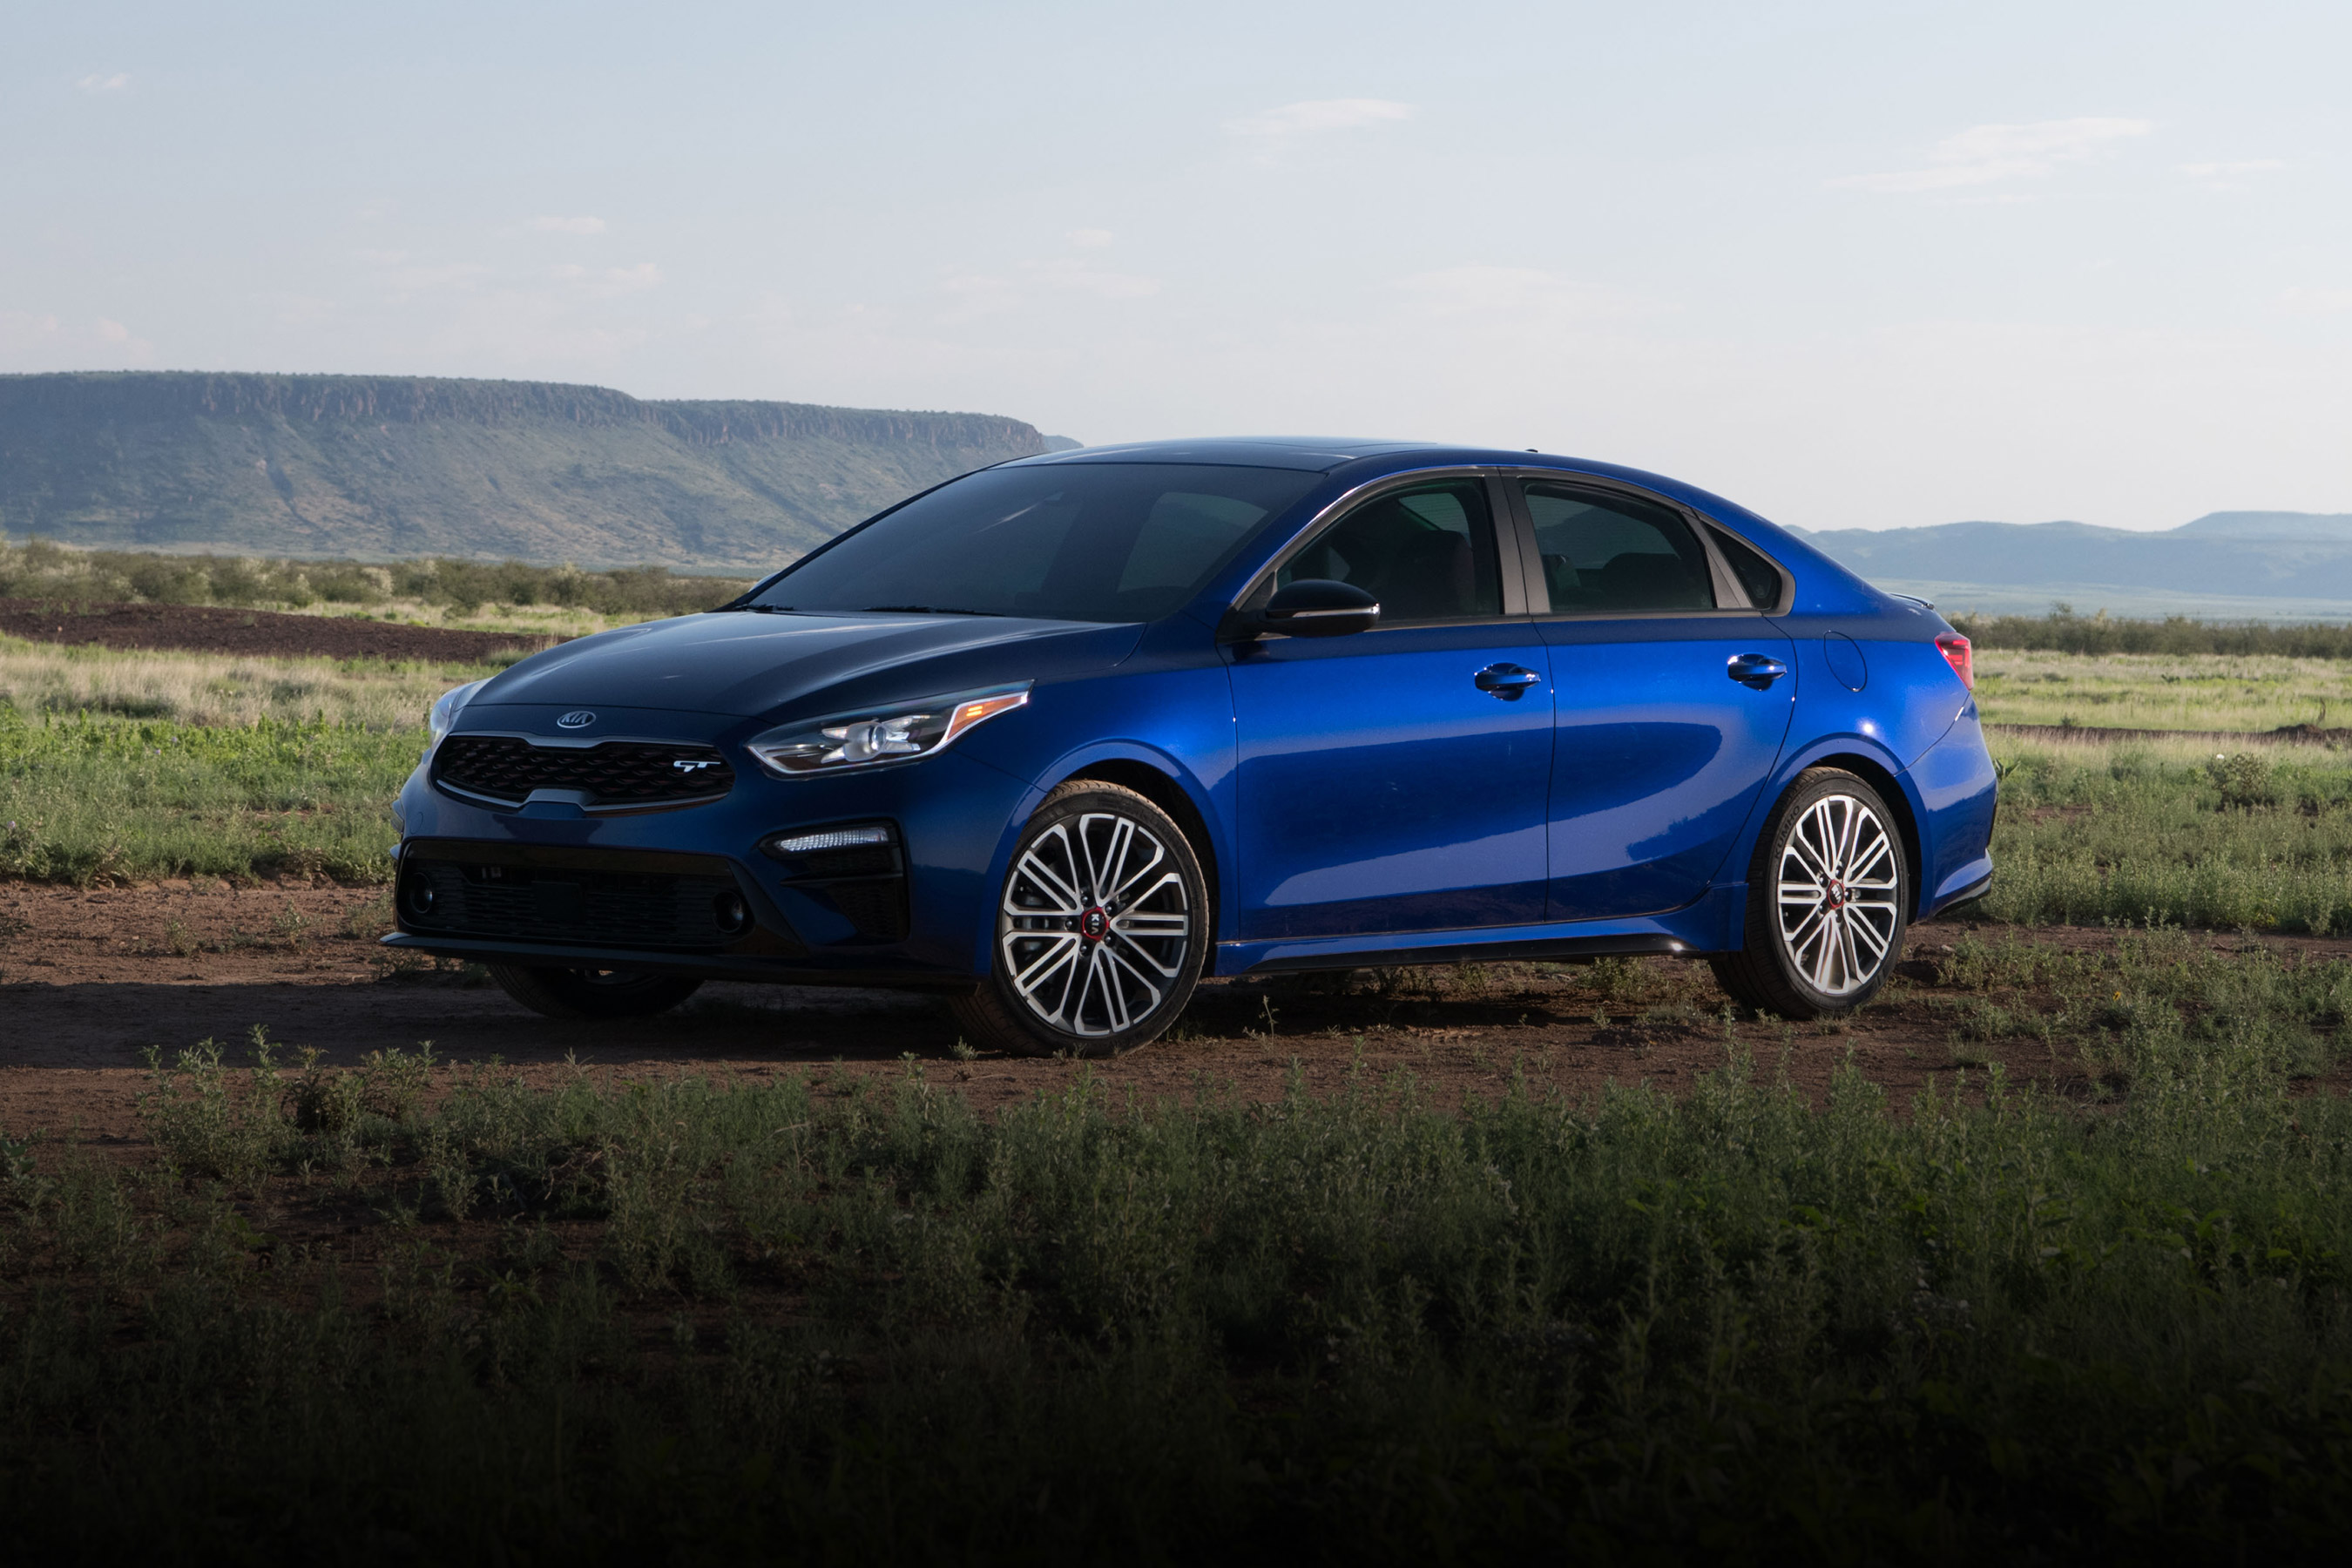 2020 Kia Forte Side View Blue Exterior Picture